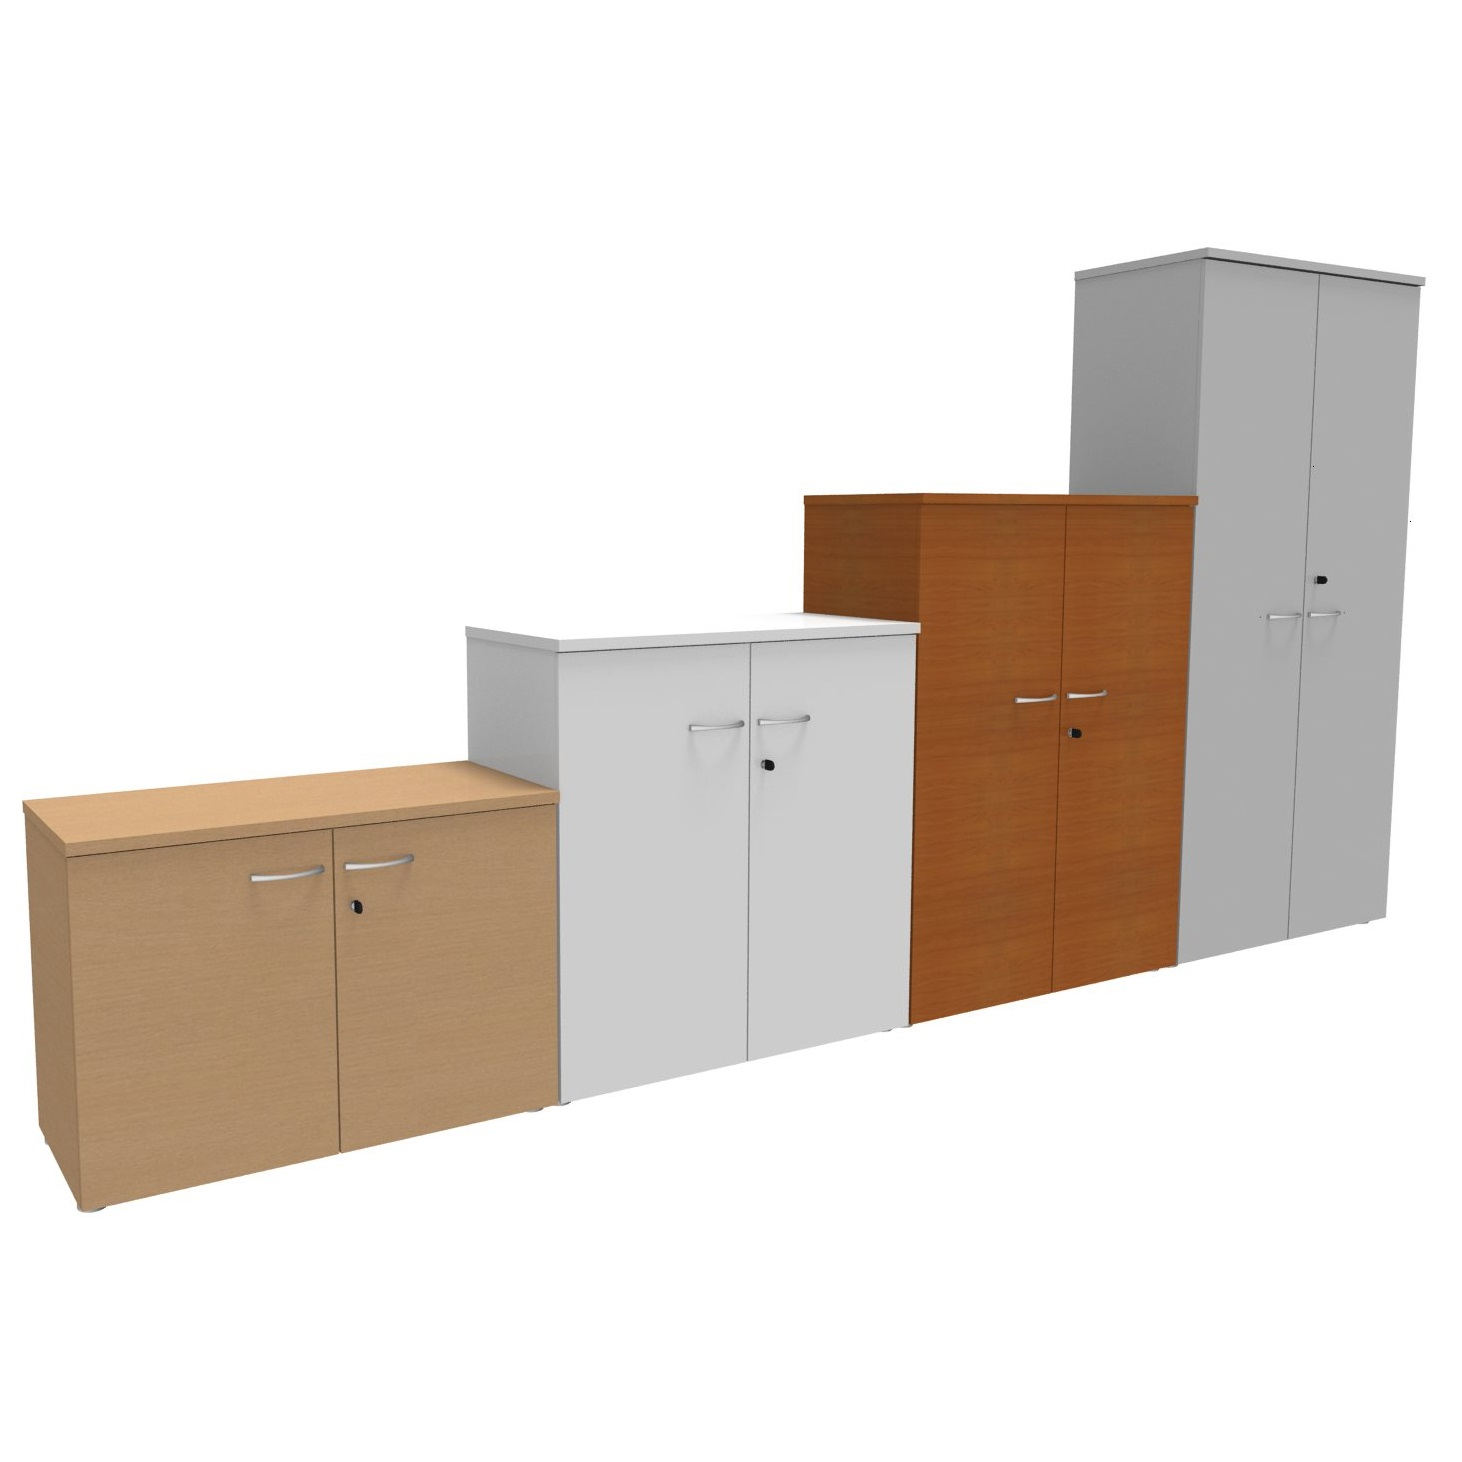 with lockable uk designs wardrobe classic on storage doors knobs nice small wood cupboard cabinets wooden awesome